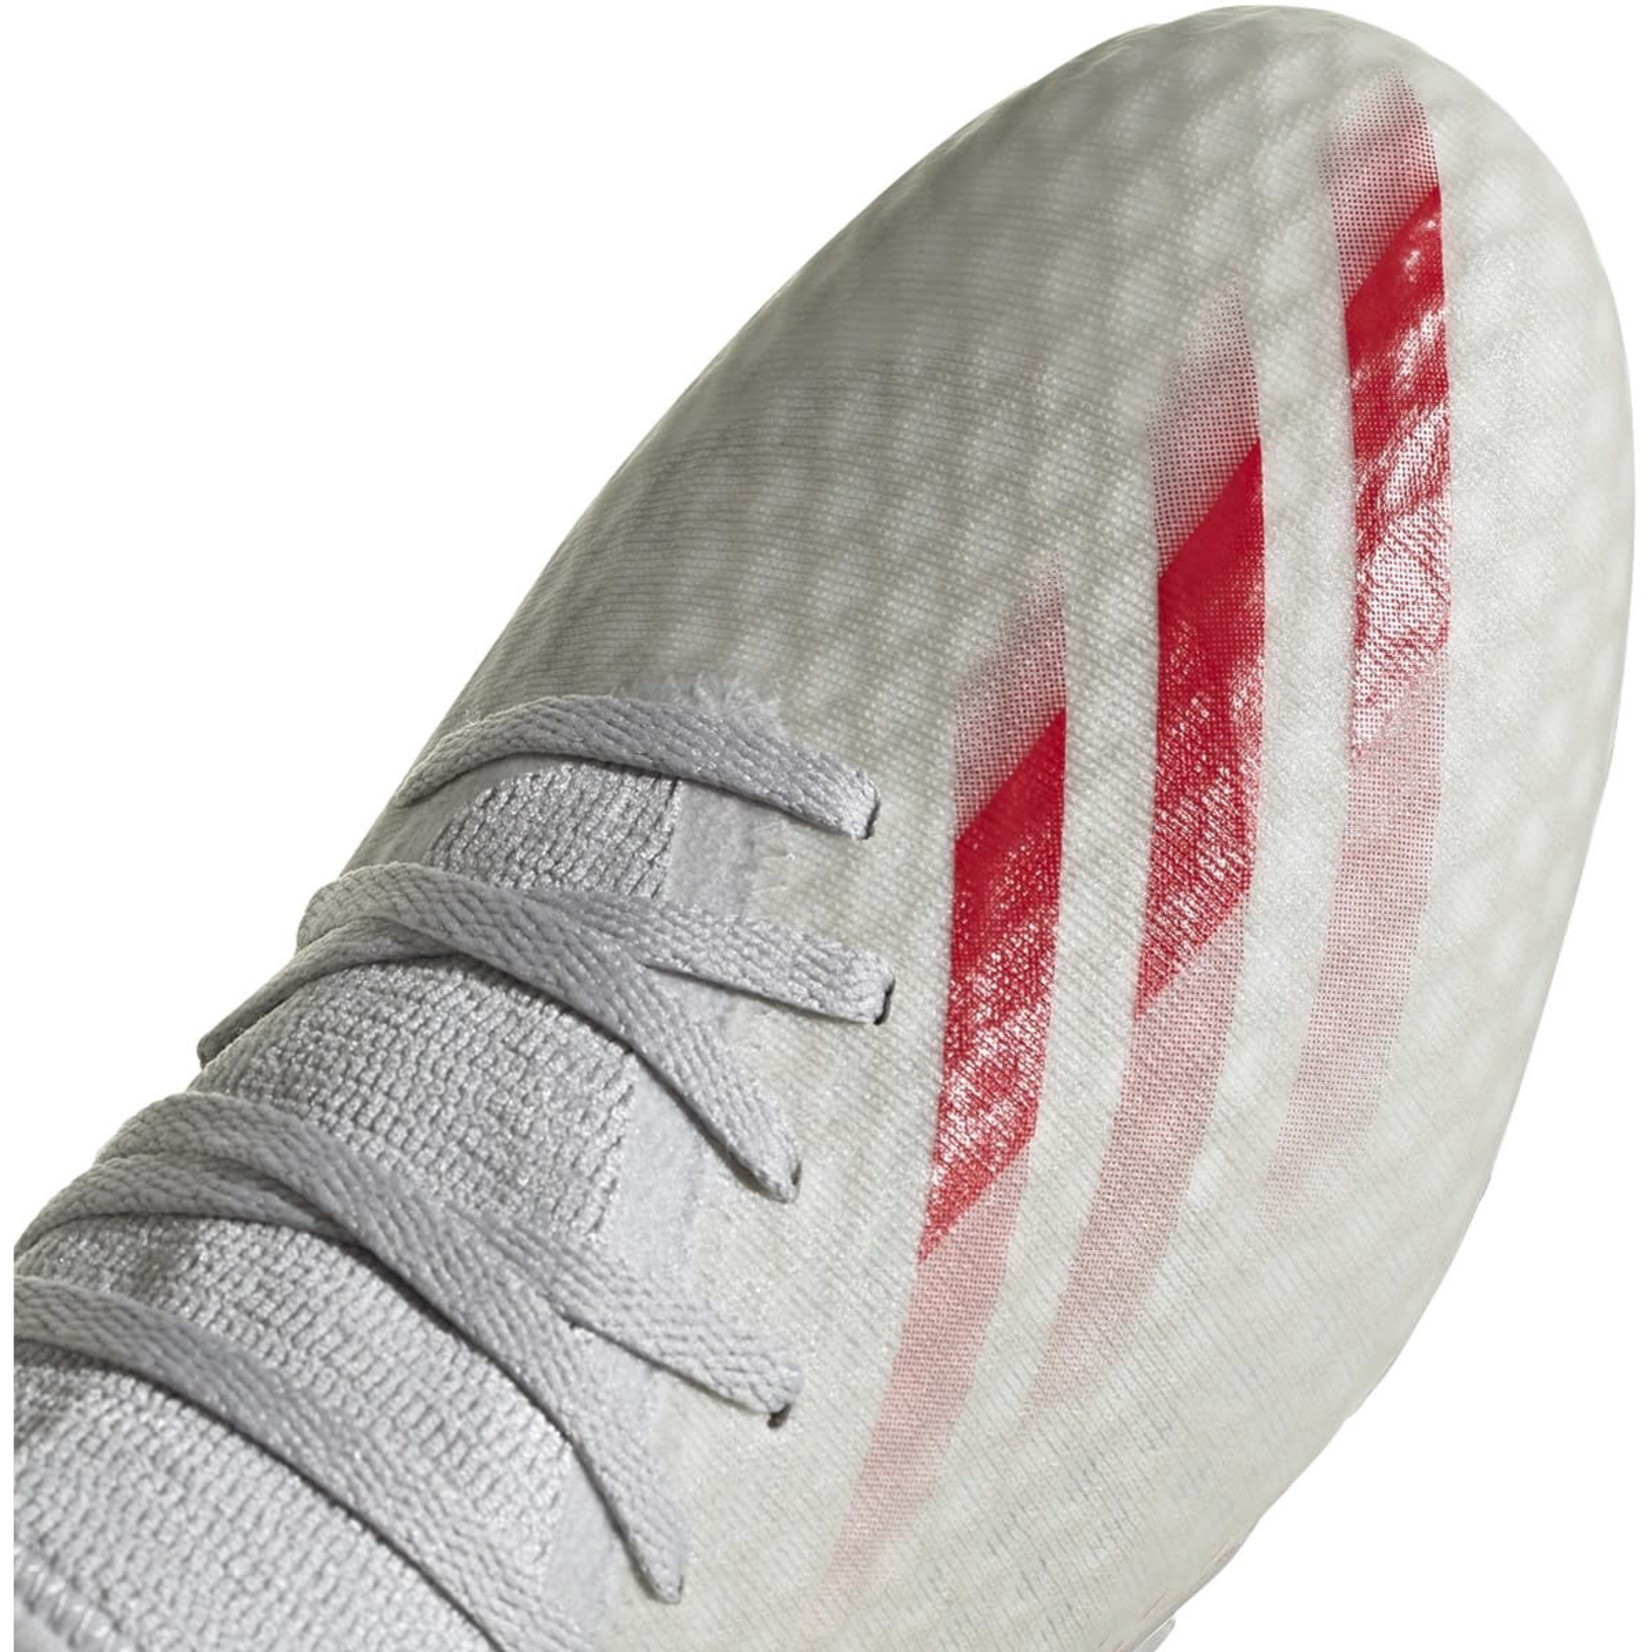 ADIDAS X GHOSTED.3 FG (SILVER/RED/BLUE)